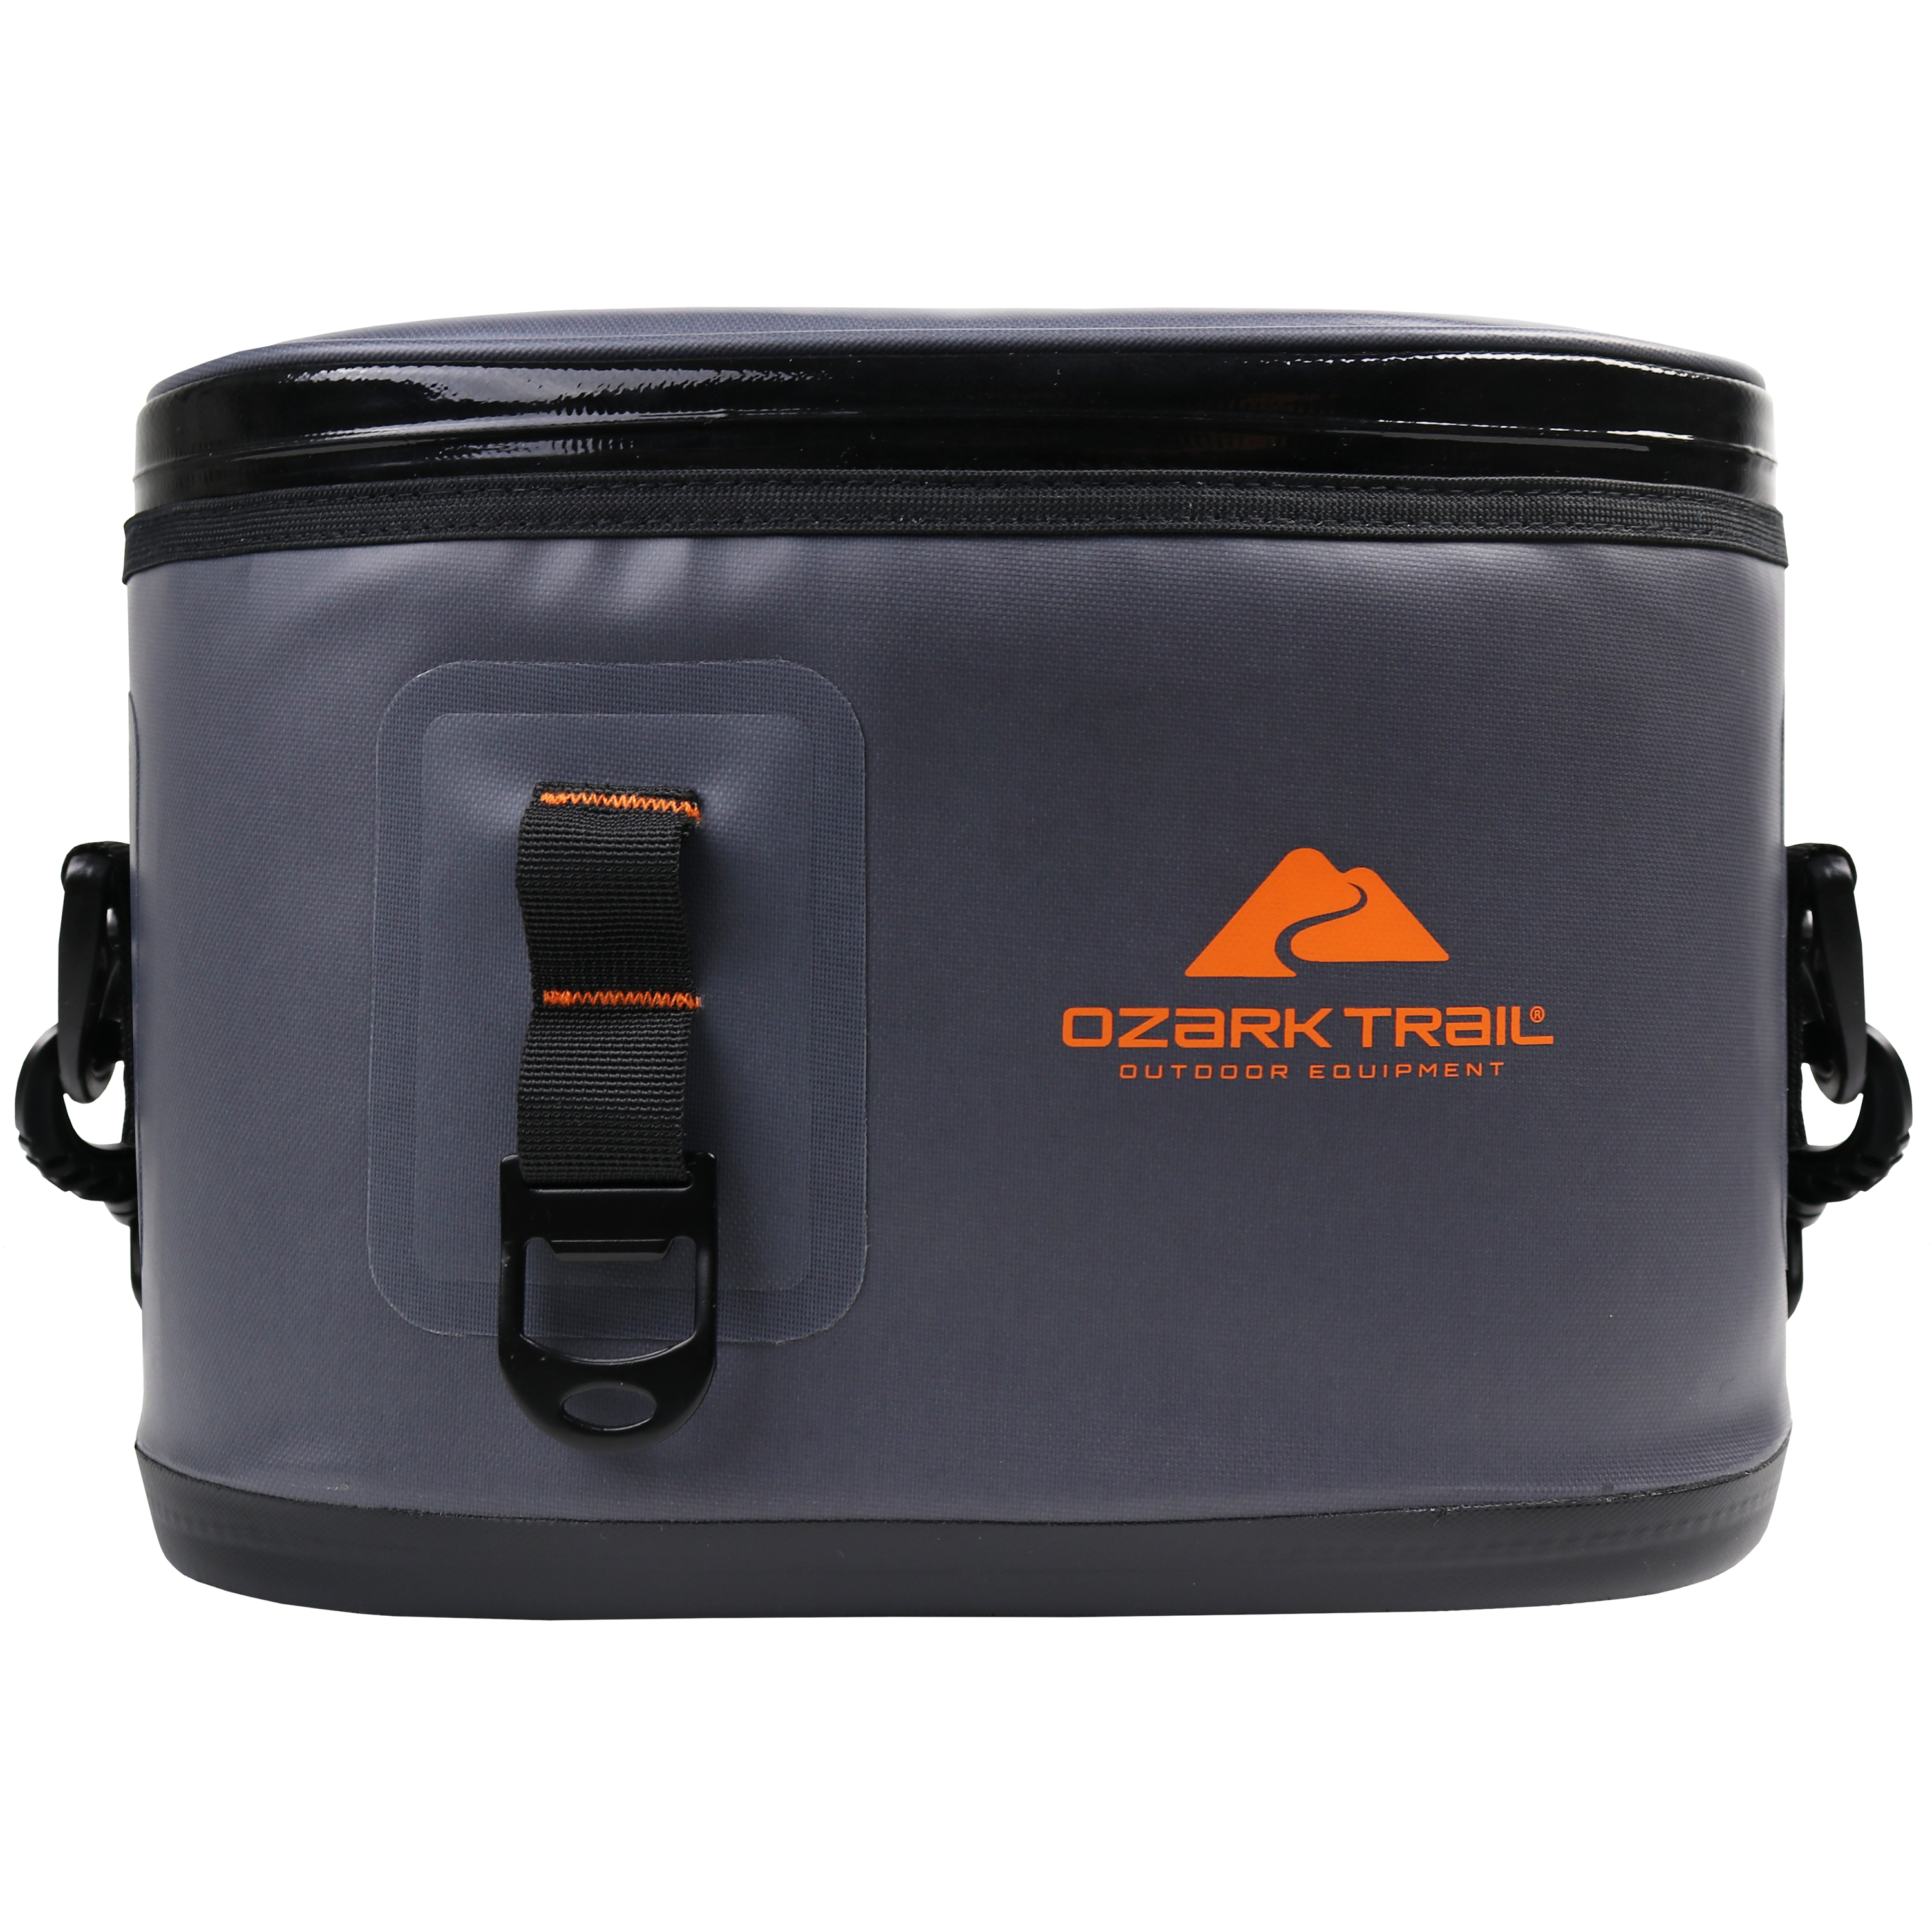 bde0f0ce0 Ozark Trail Premium 6 Can Cooler with Bottle Opener, Gray - Walmart.com